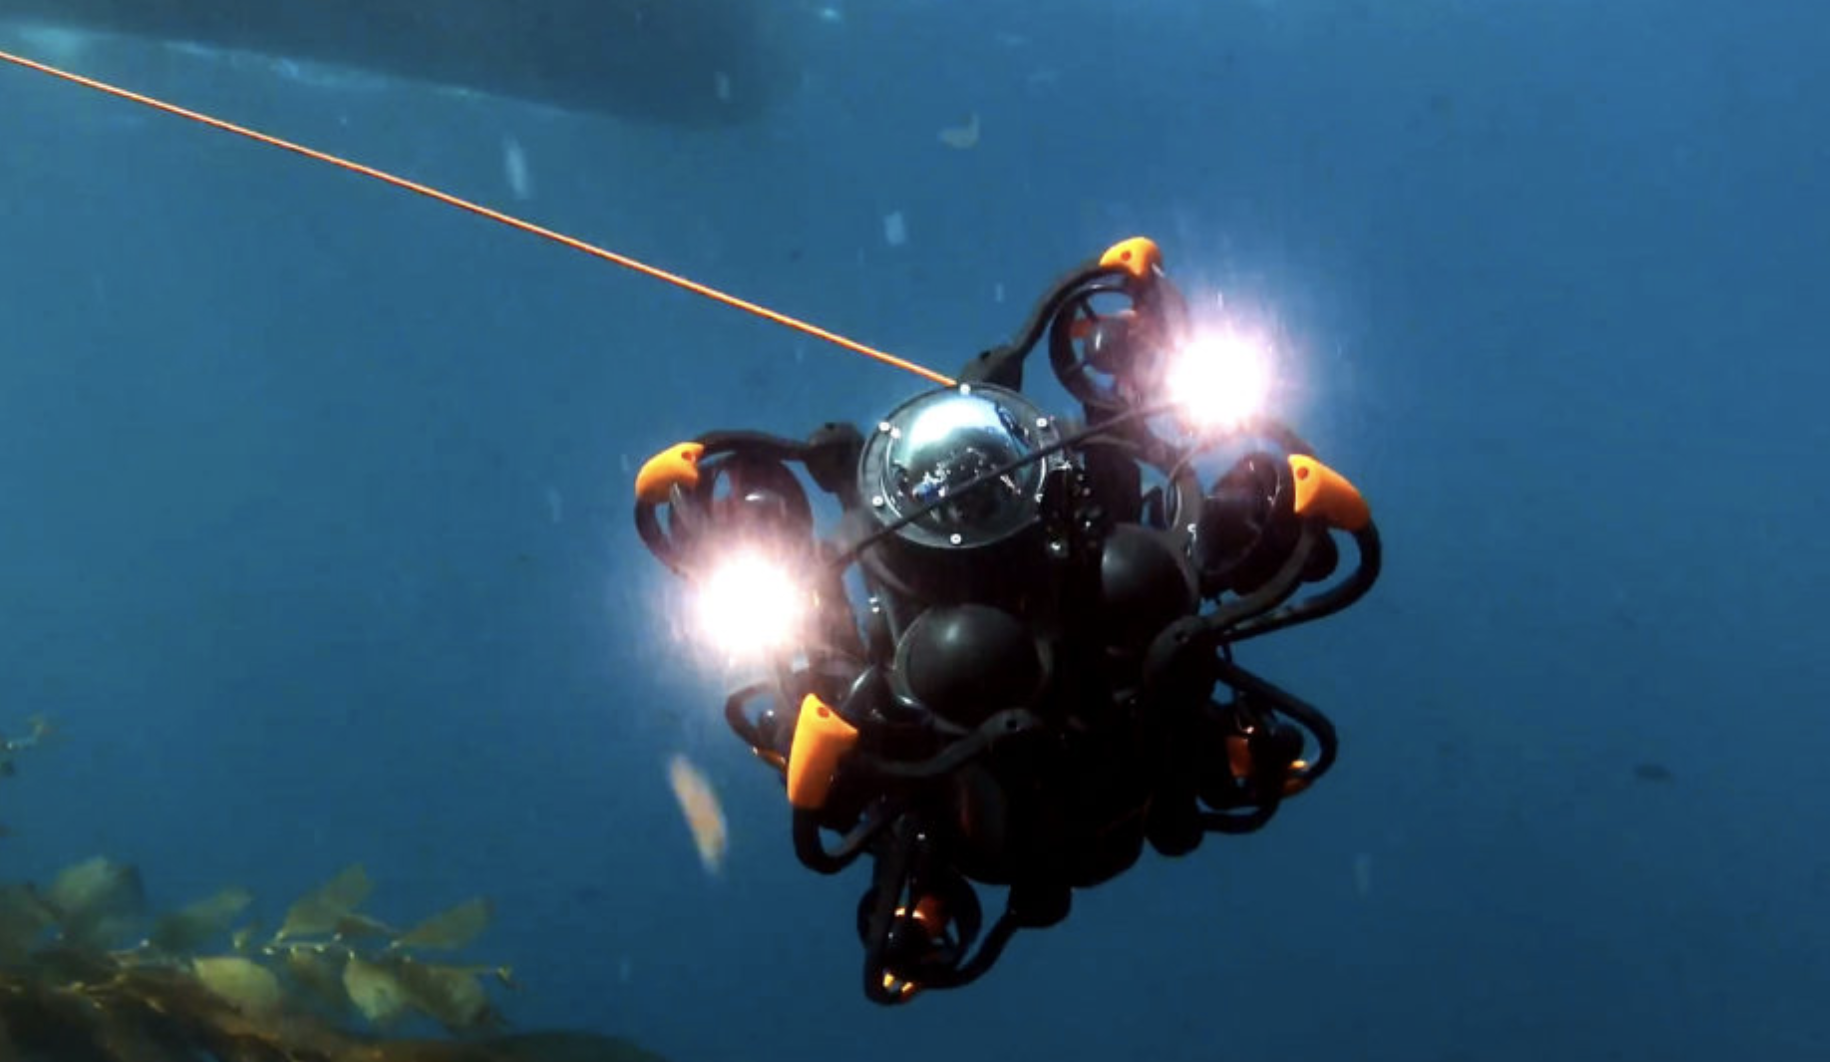 SRV-8 remotely operated underwater vehicle underwater